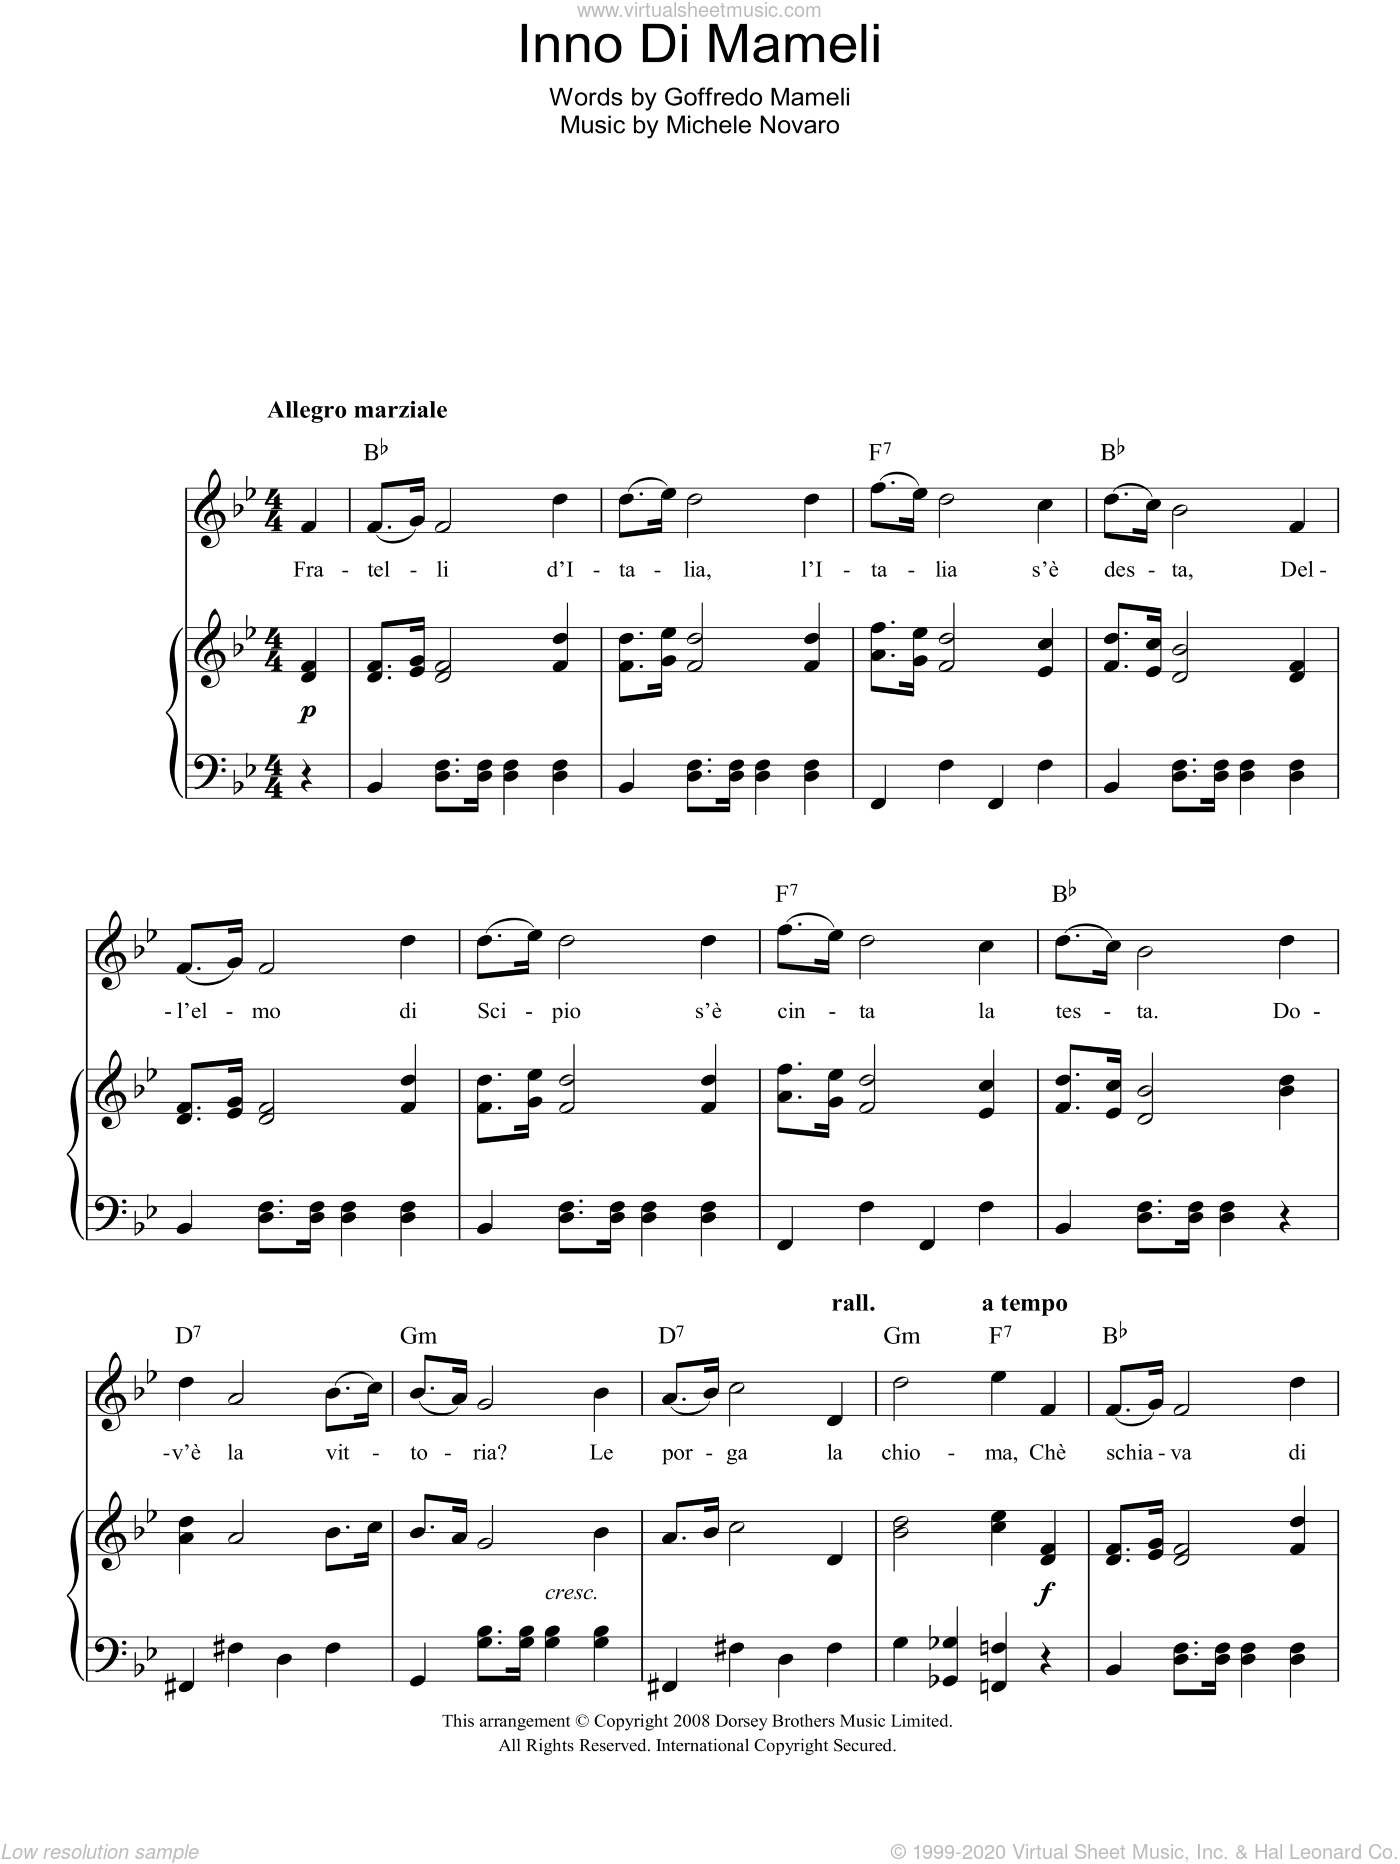 Inno Di Mameli (Italian National Anthem) sheet music for voice, piano or guitar by Michele Novaro and Goffredo Mameli, intermediate. Score Image Preview.